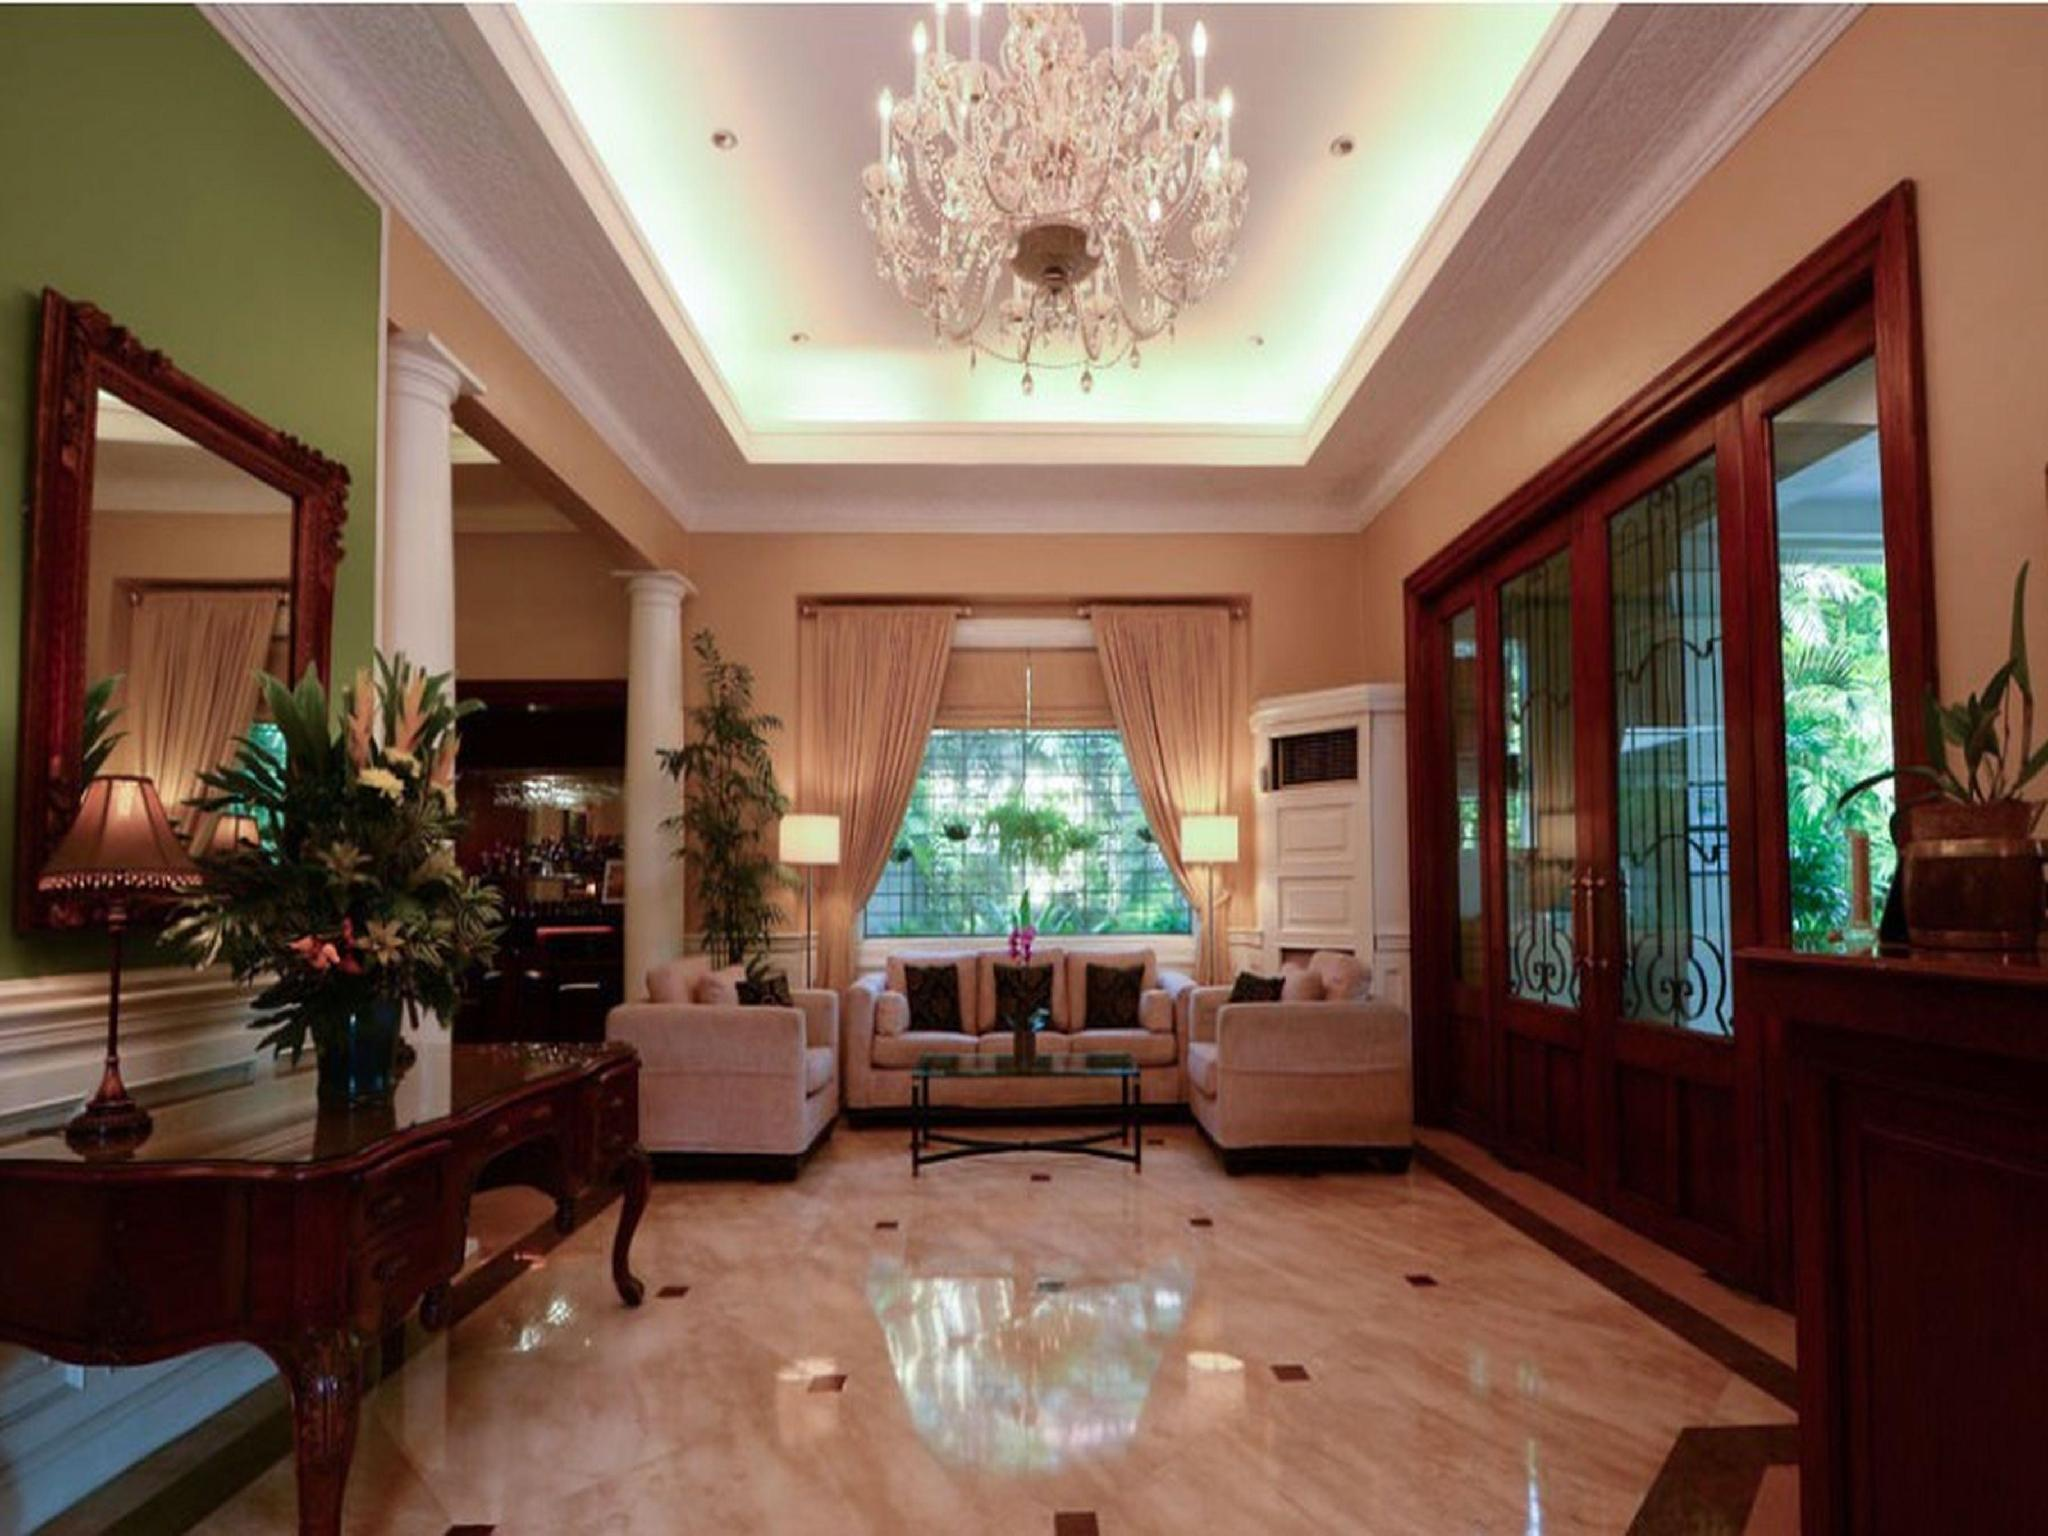 Orchid Garden Suites - Malate, Manila, Philippines - Great ...